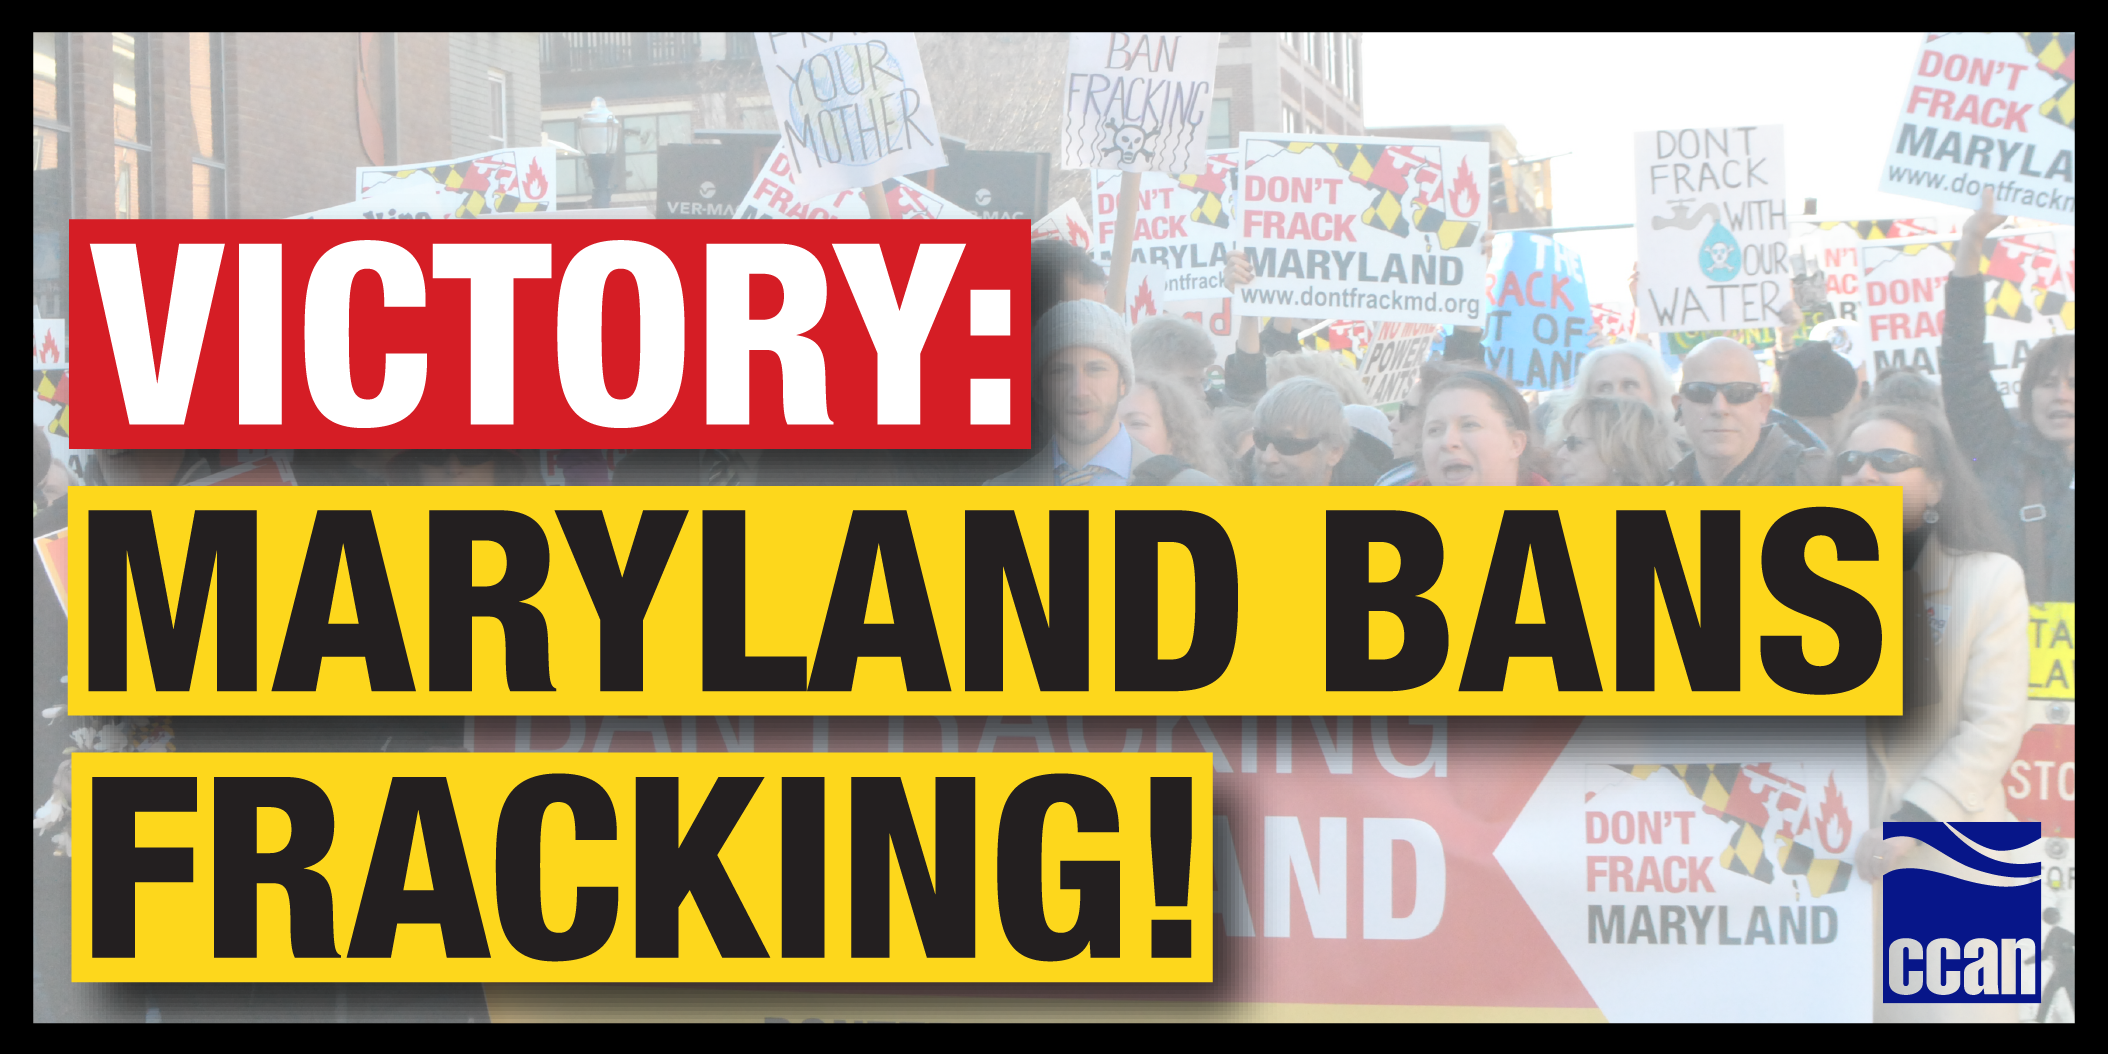 MD Fracking Ban Victory_Twitter-01